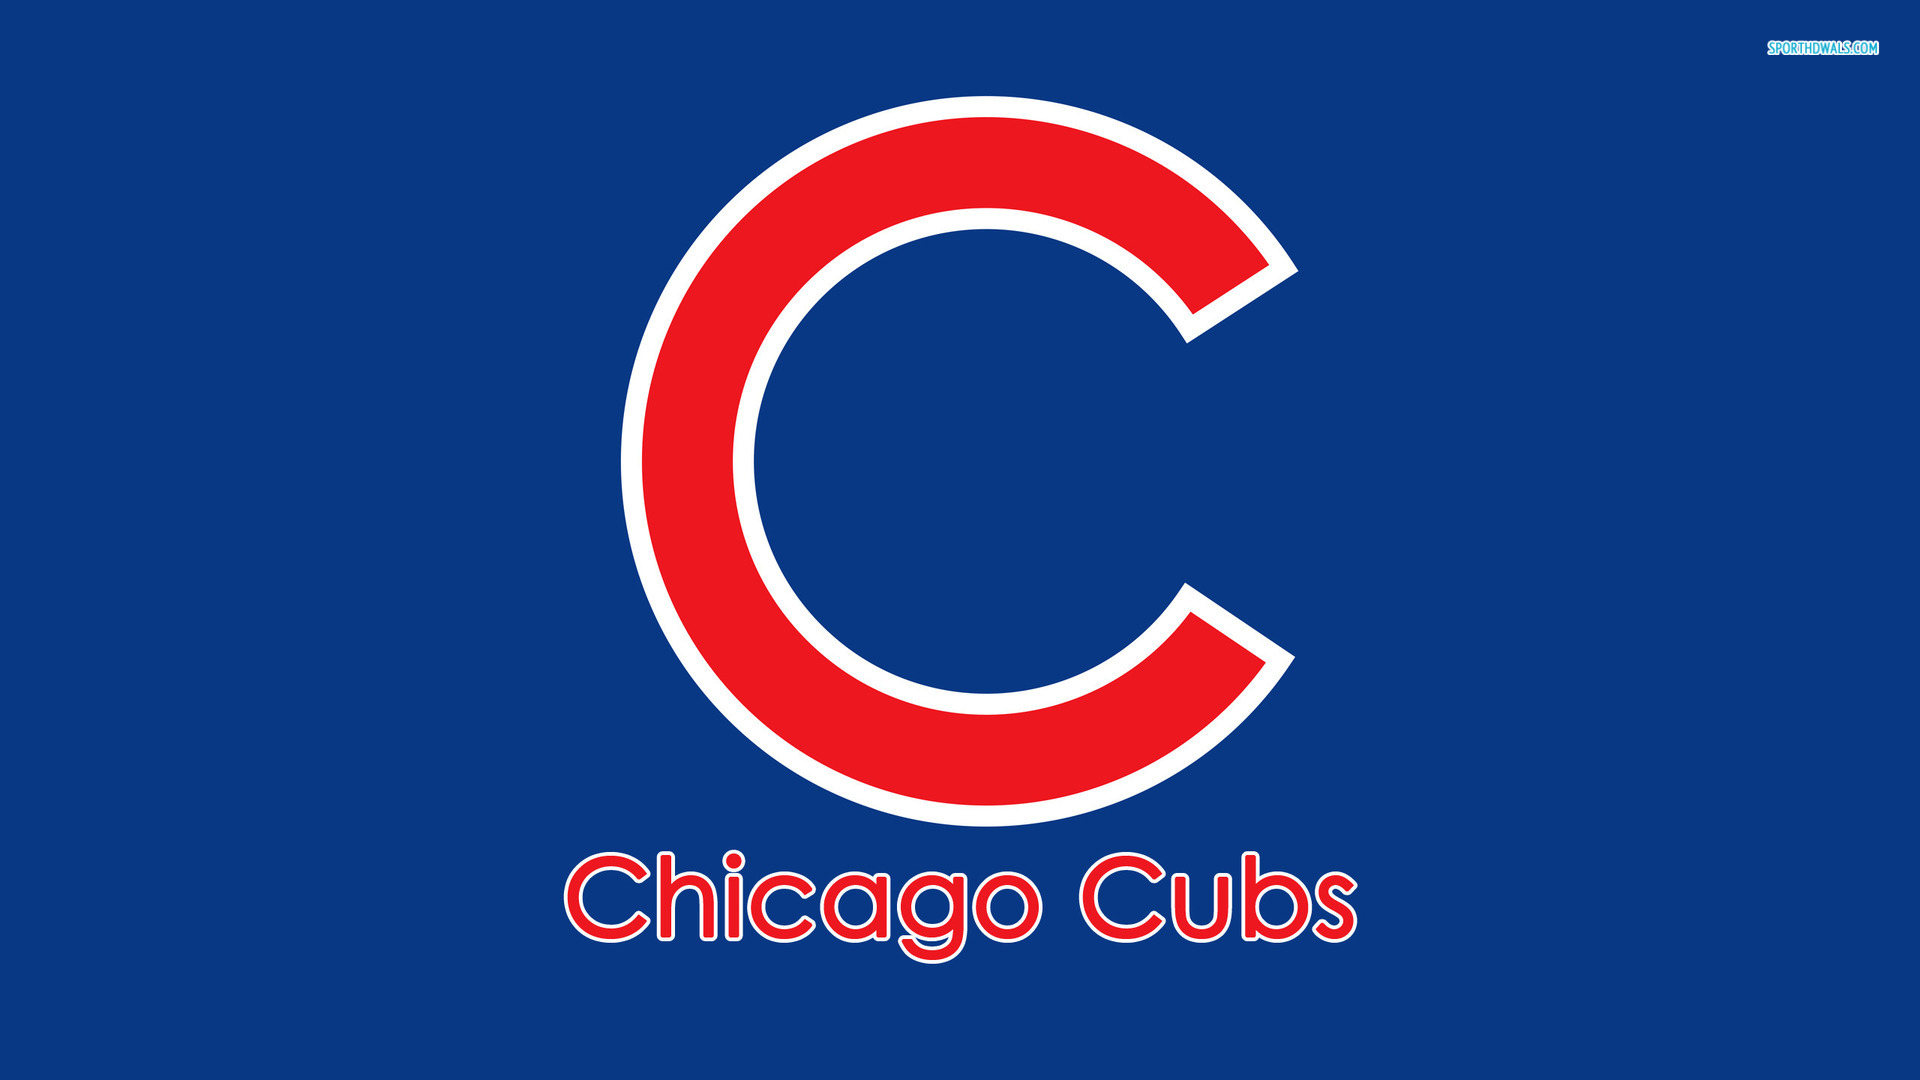 Chicago Cubs Wallpaper Hd: Great Chicago Cubs Wallpaper